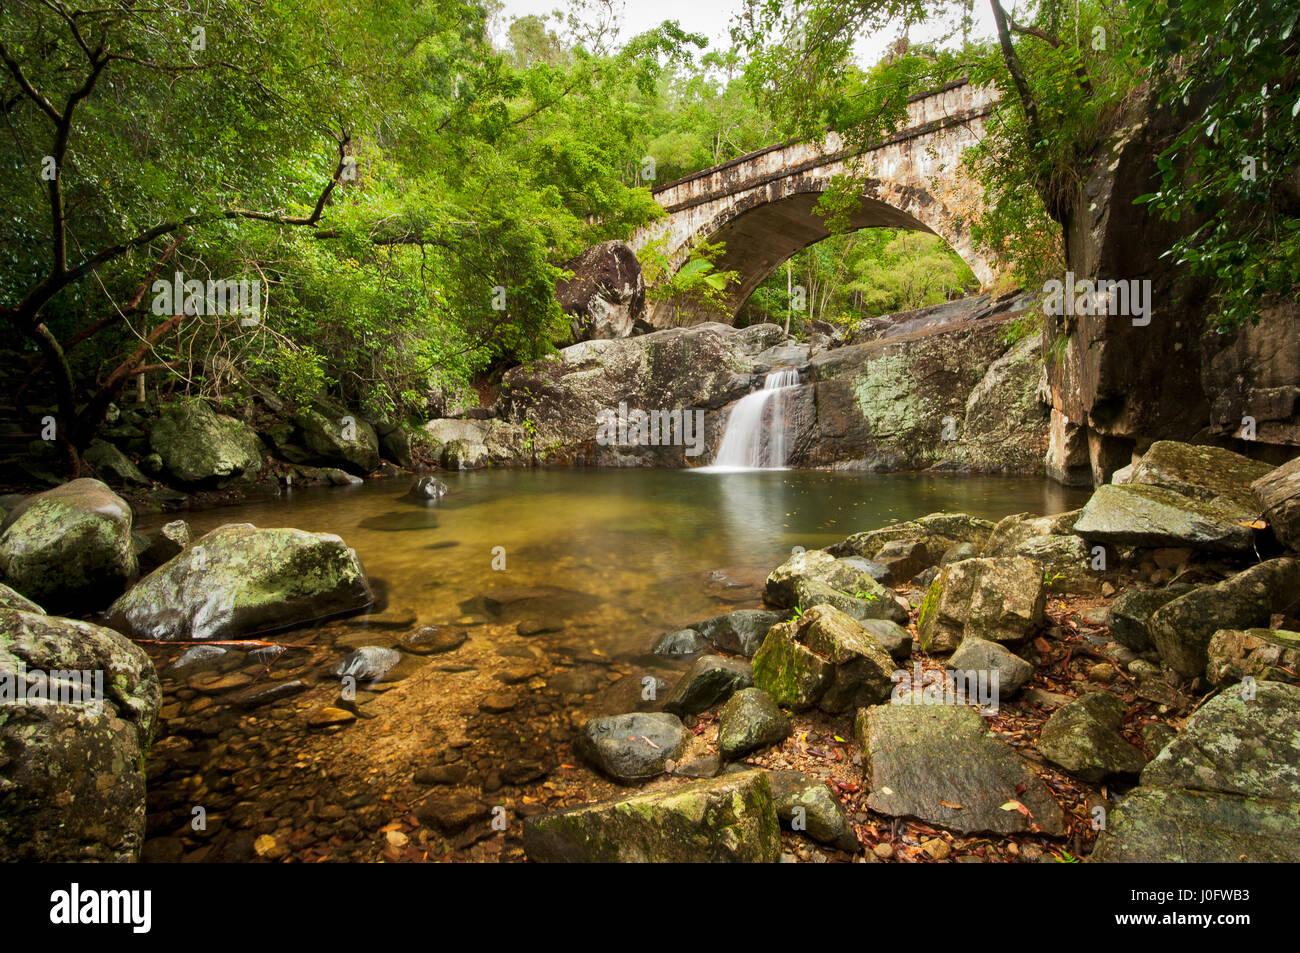 Little Crystal Creek Bridge in the Paluma Range. - Stock Image